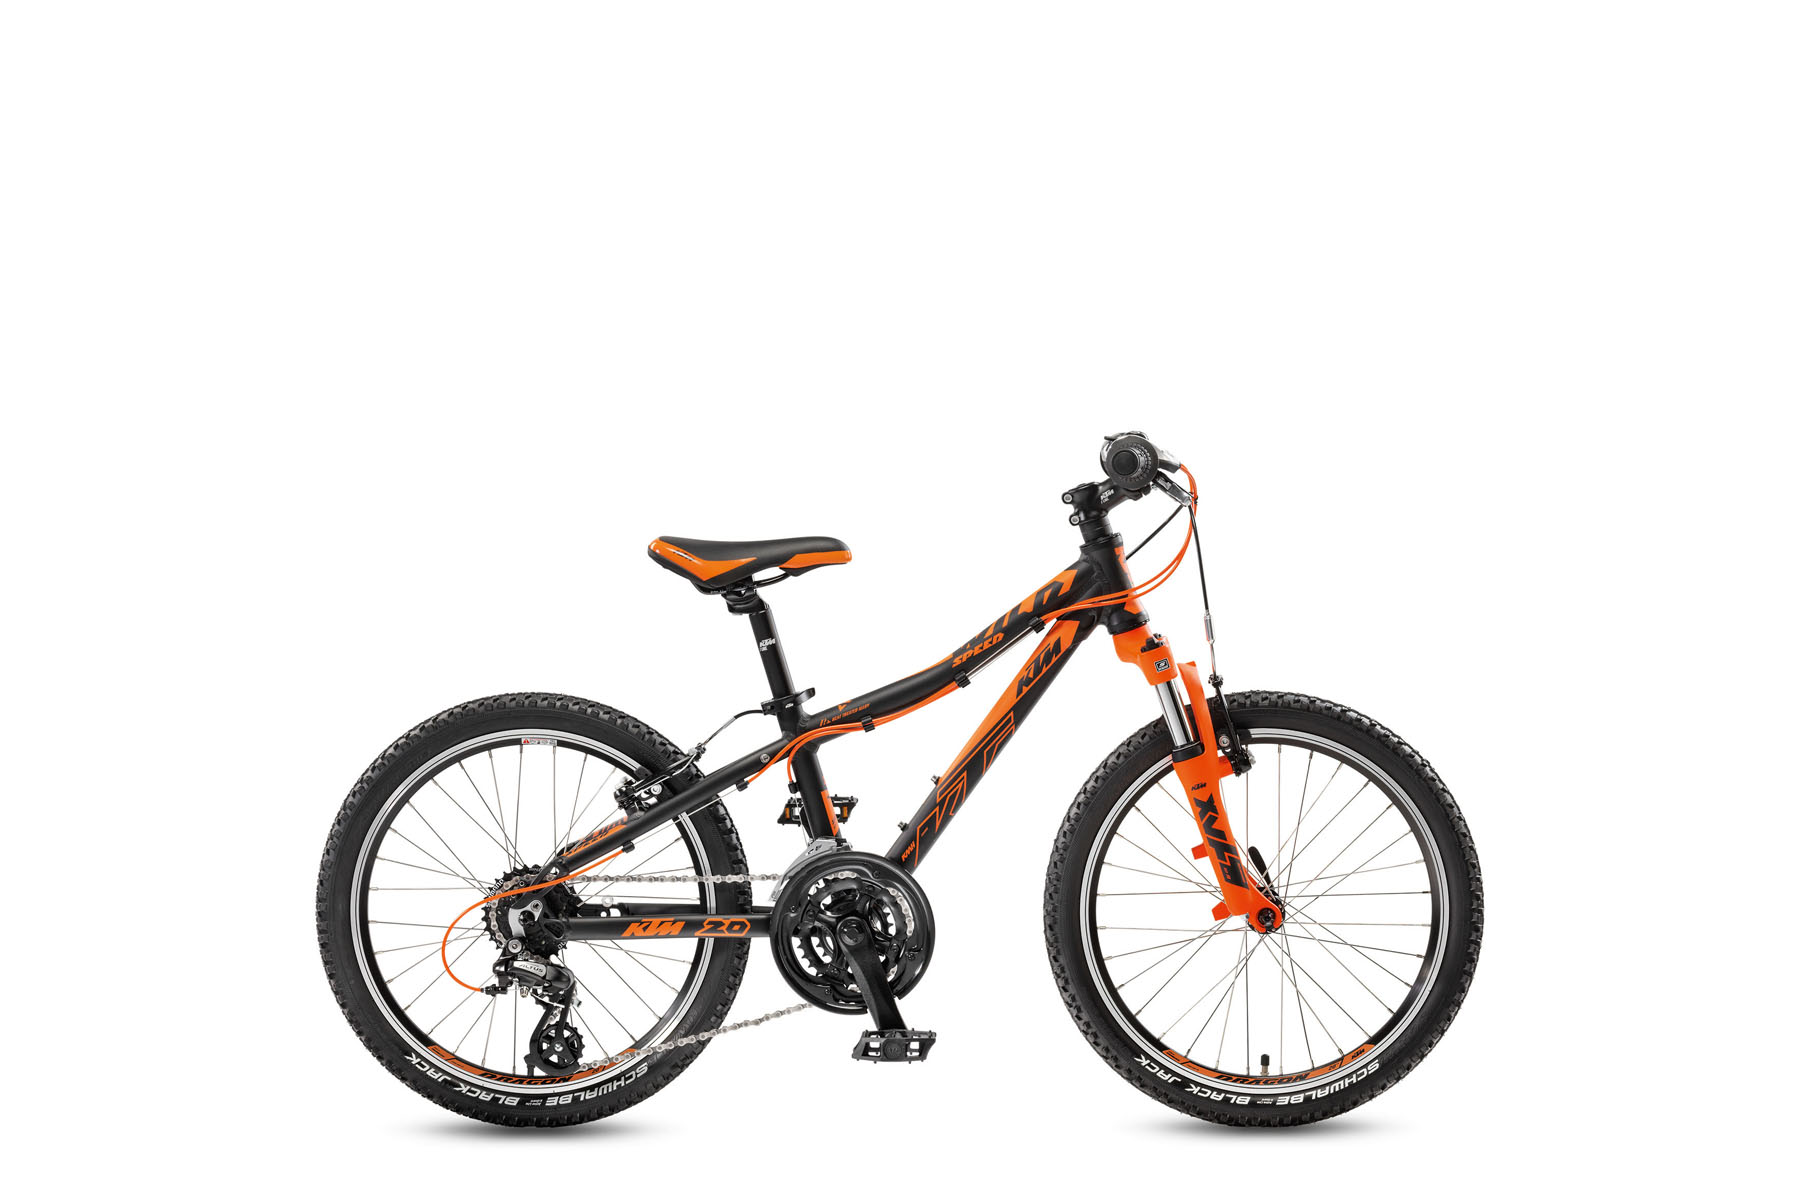 Bicicleta KTM Copii WILD Speed 20.21 V    21s Altus 2017